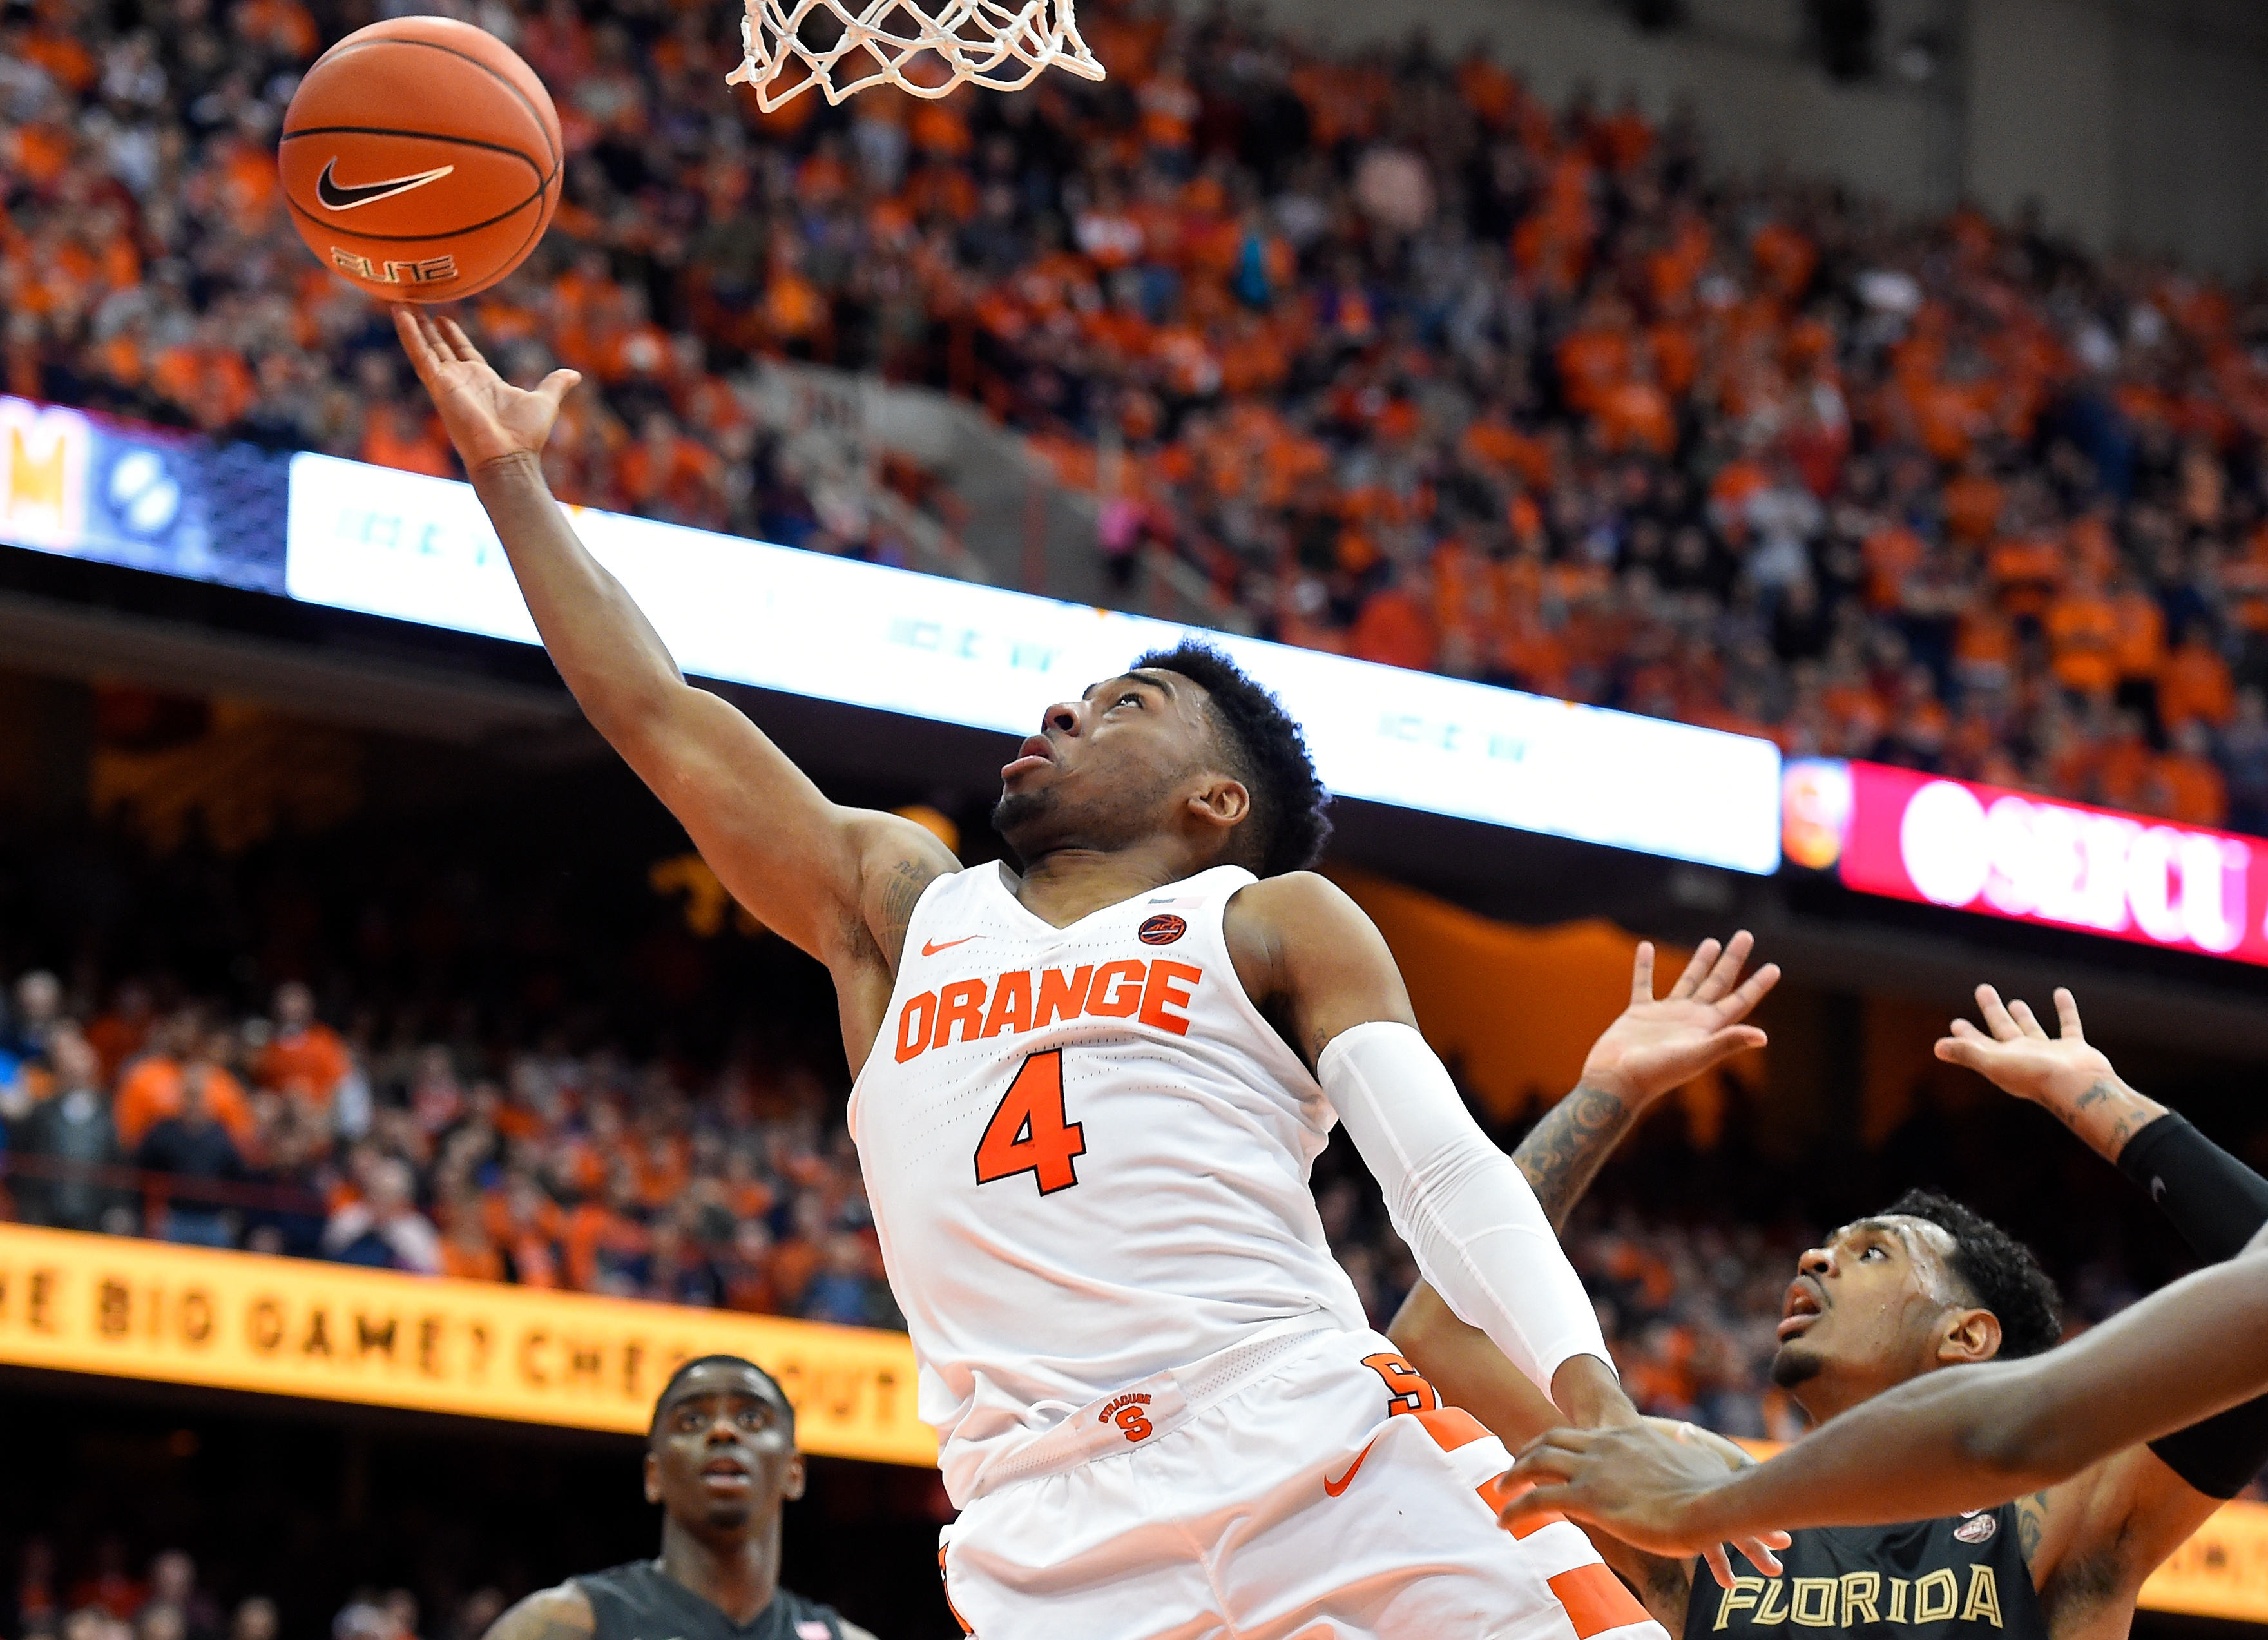 John Gillon of the Syracuse Orange shoots against the Florida State Seminoles on Jan. 28, 2017, at the Carrier Dome. SU defeated Florida State, 82-72. (Getty Images)